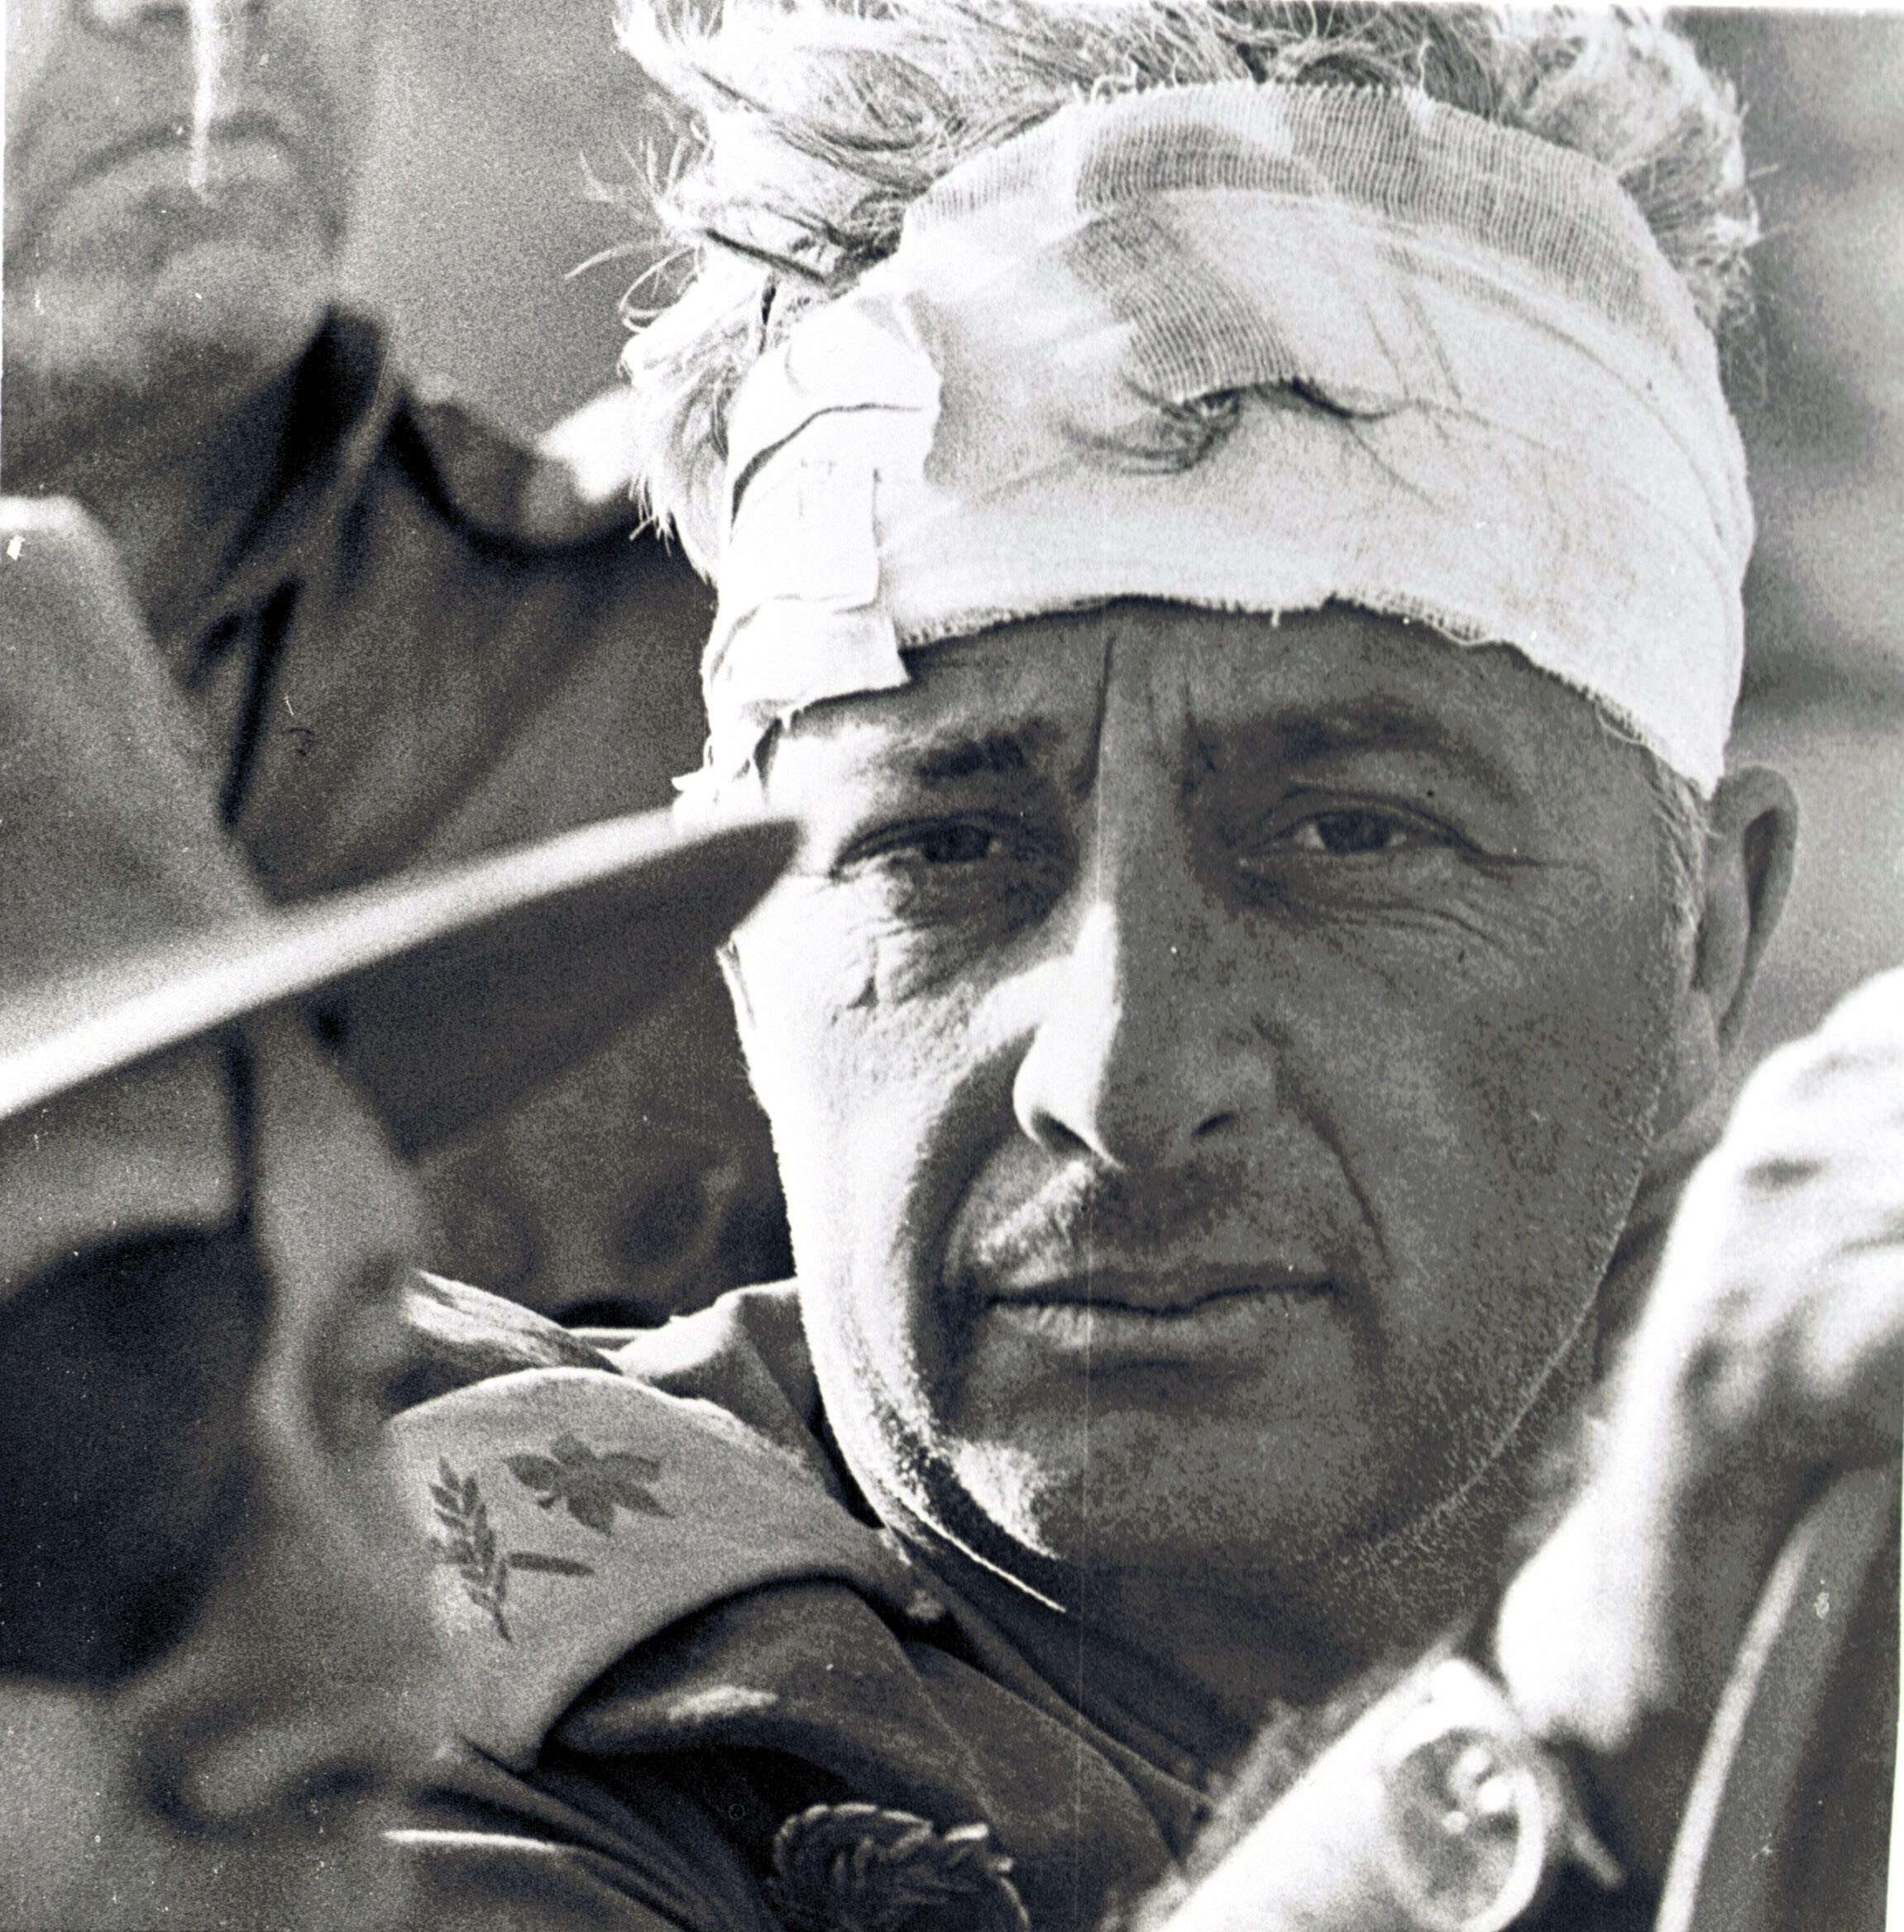 ARIEL SHARON IN SINAI - 1970S